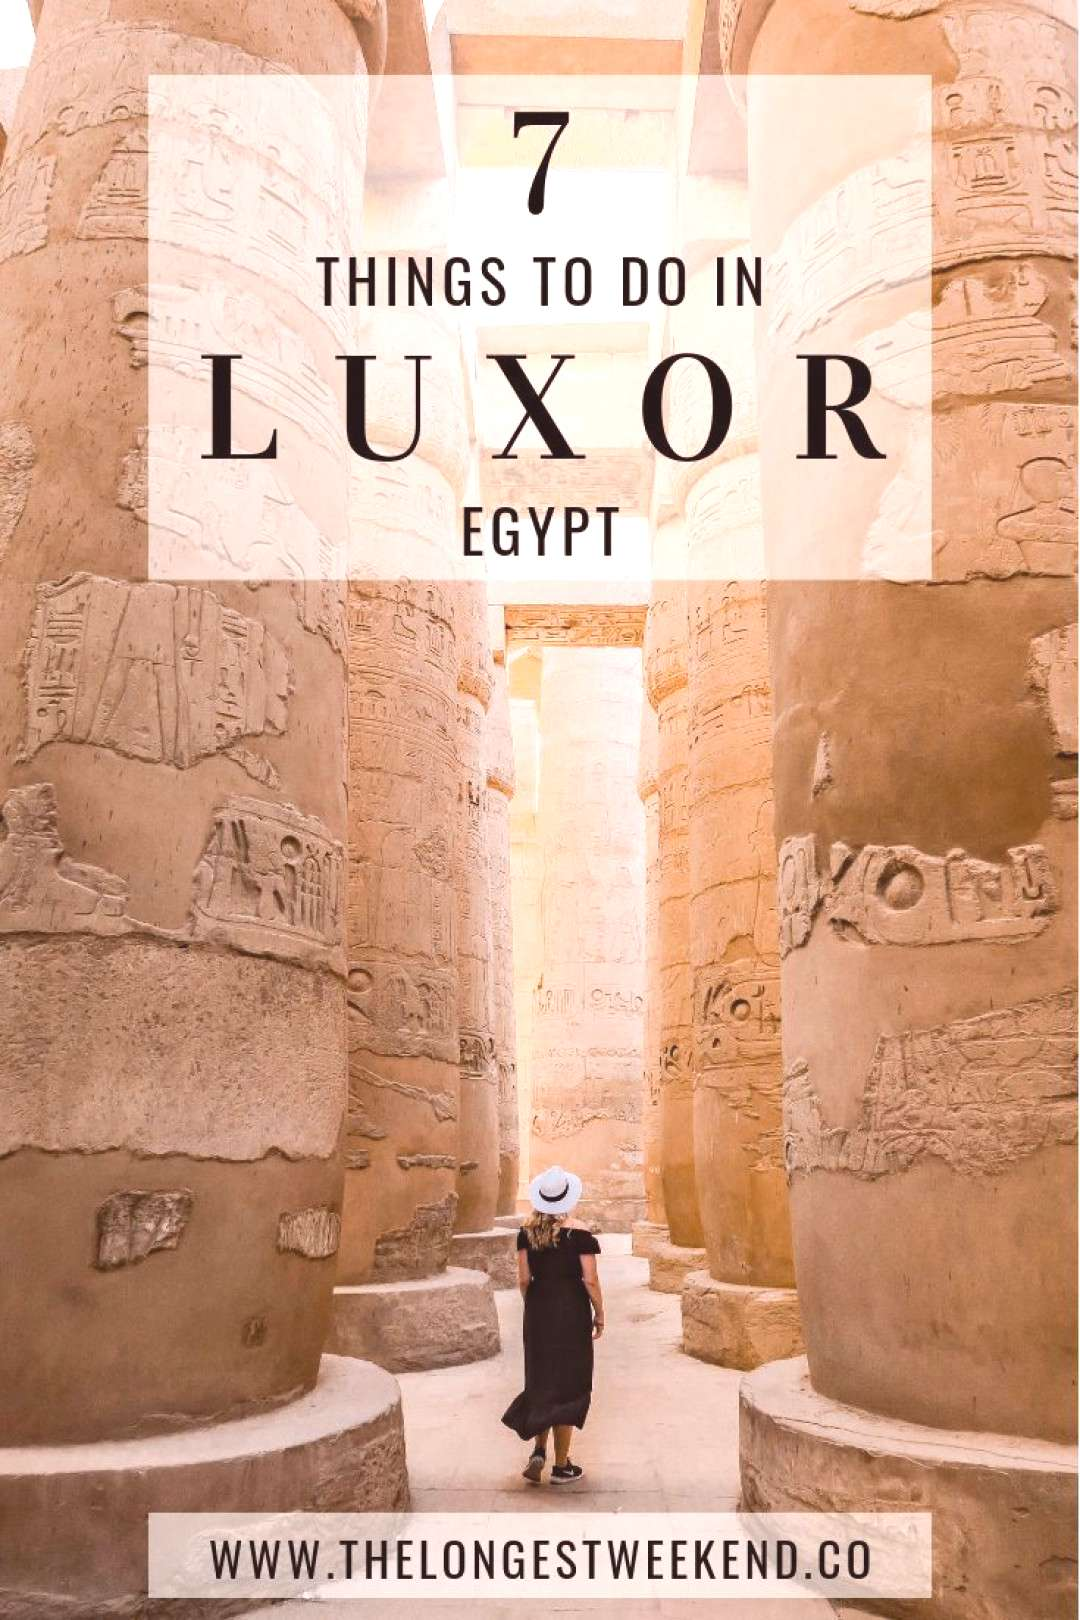 7 Amazing Things to See & Do in Luxor, Egypt - The Longest Weekend A guide to visiting Egypt's anci